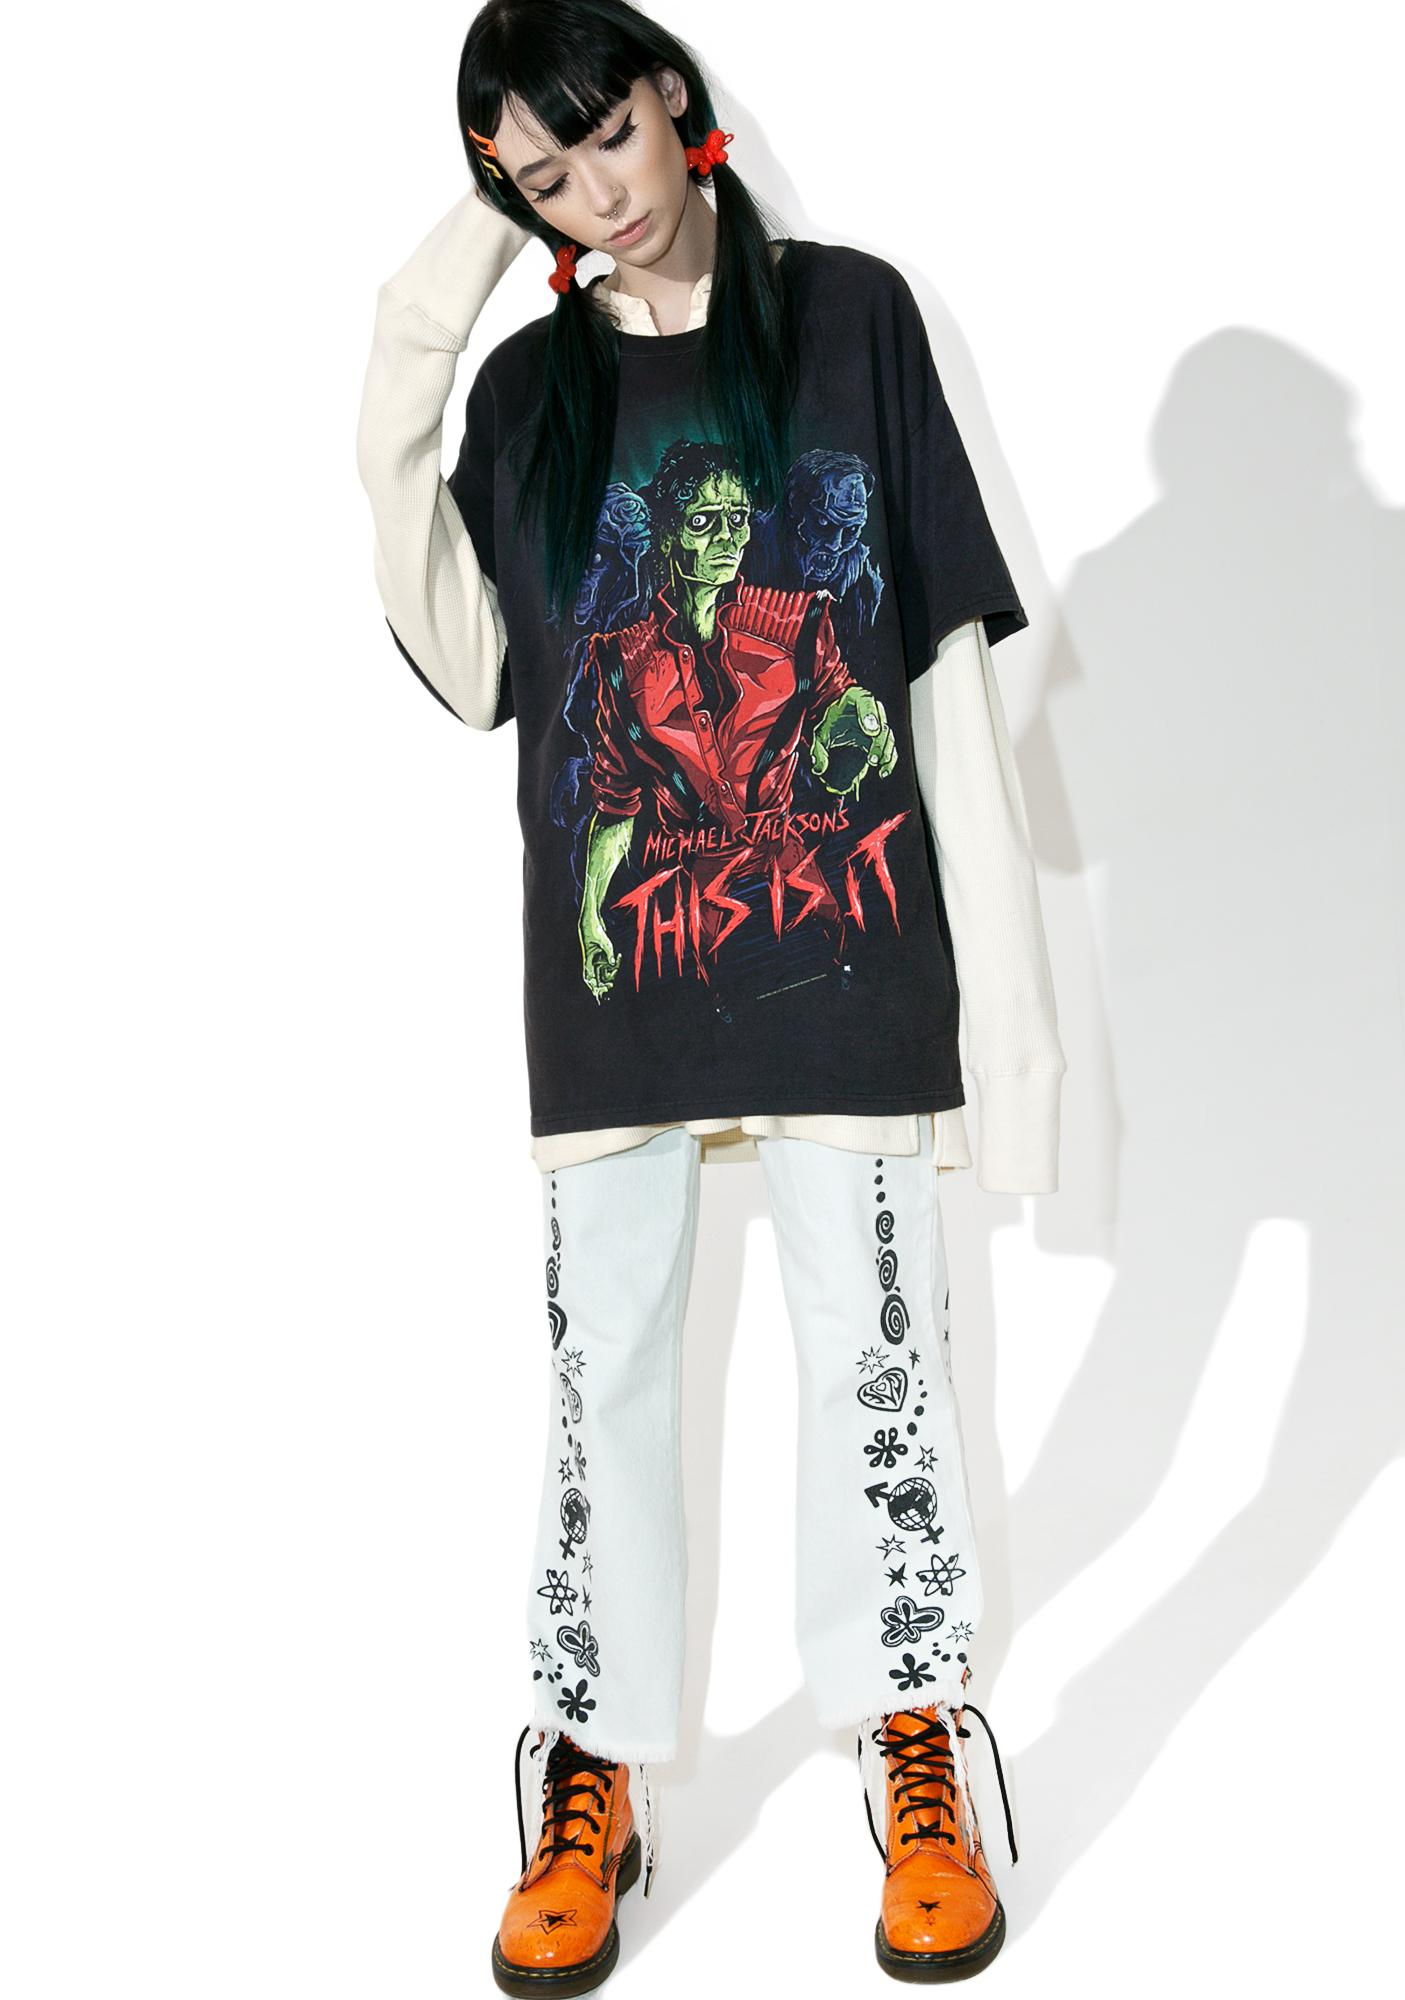 Vintage Michael Jackson This Is It Tee